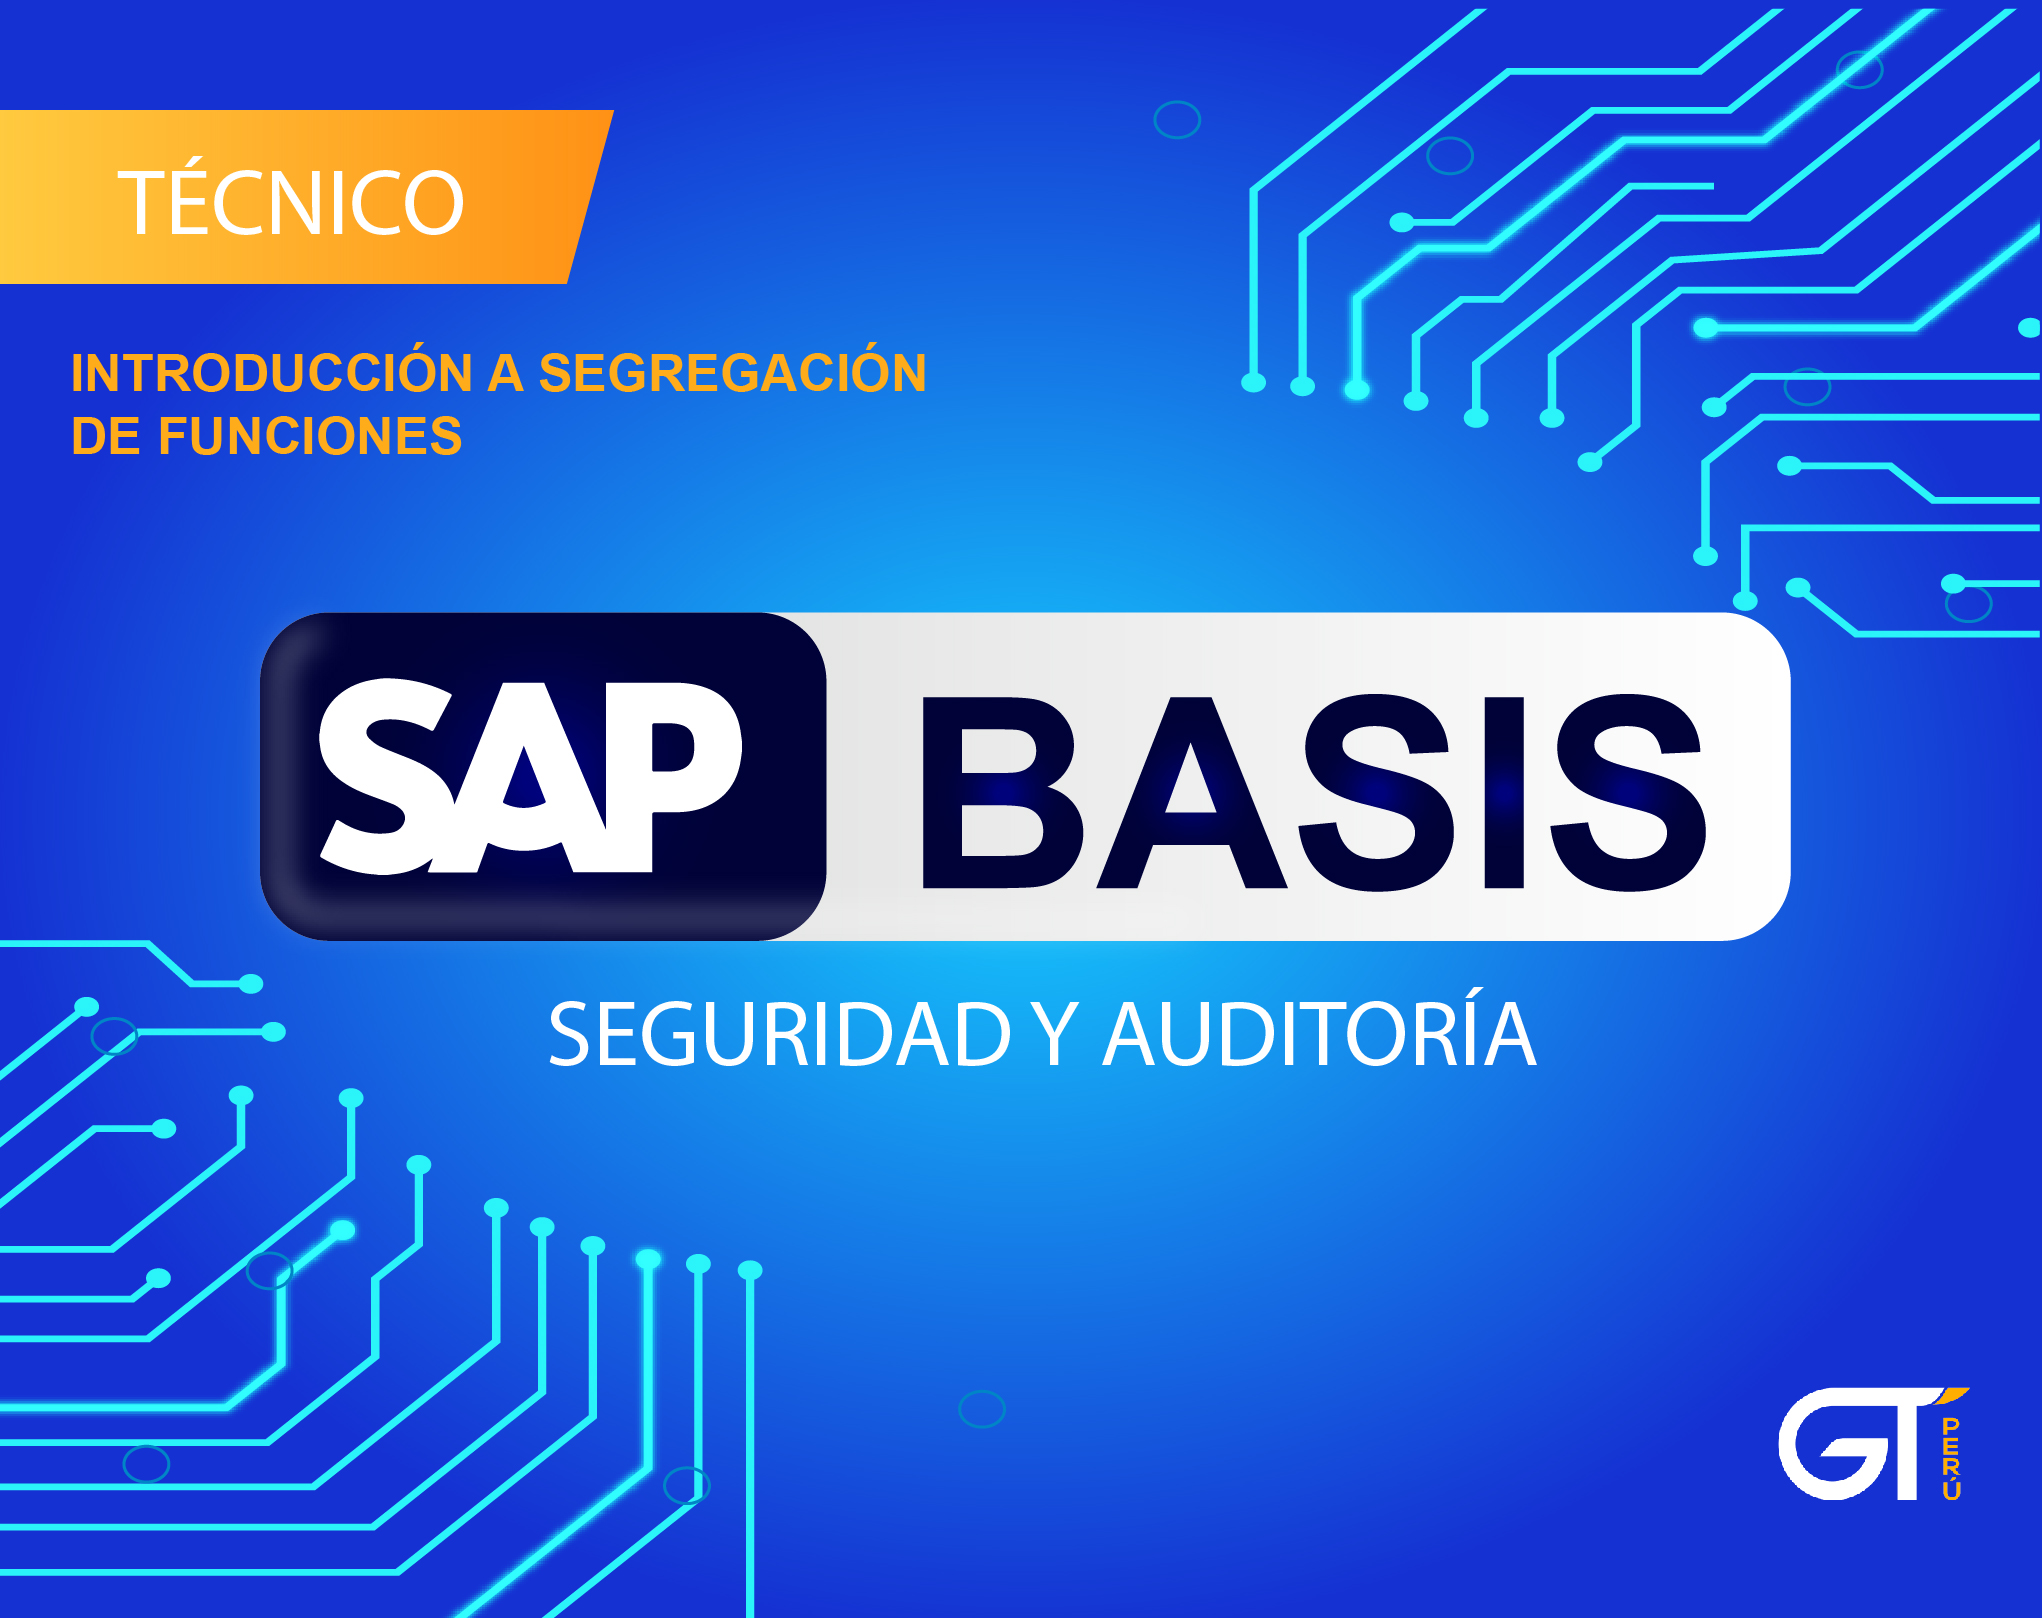 SAP Basis Seguridad y Auditoria